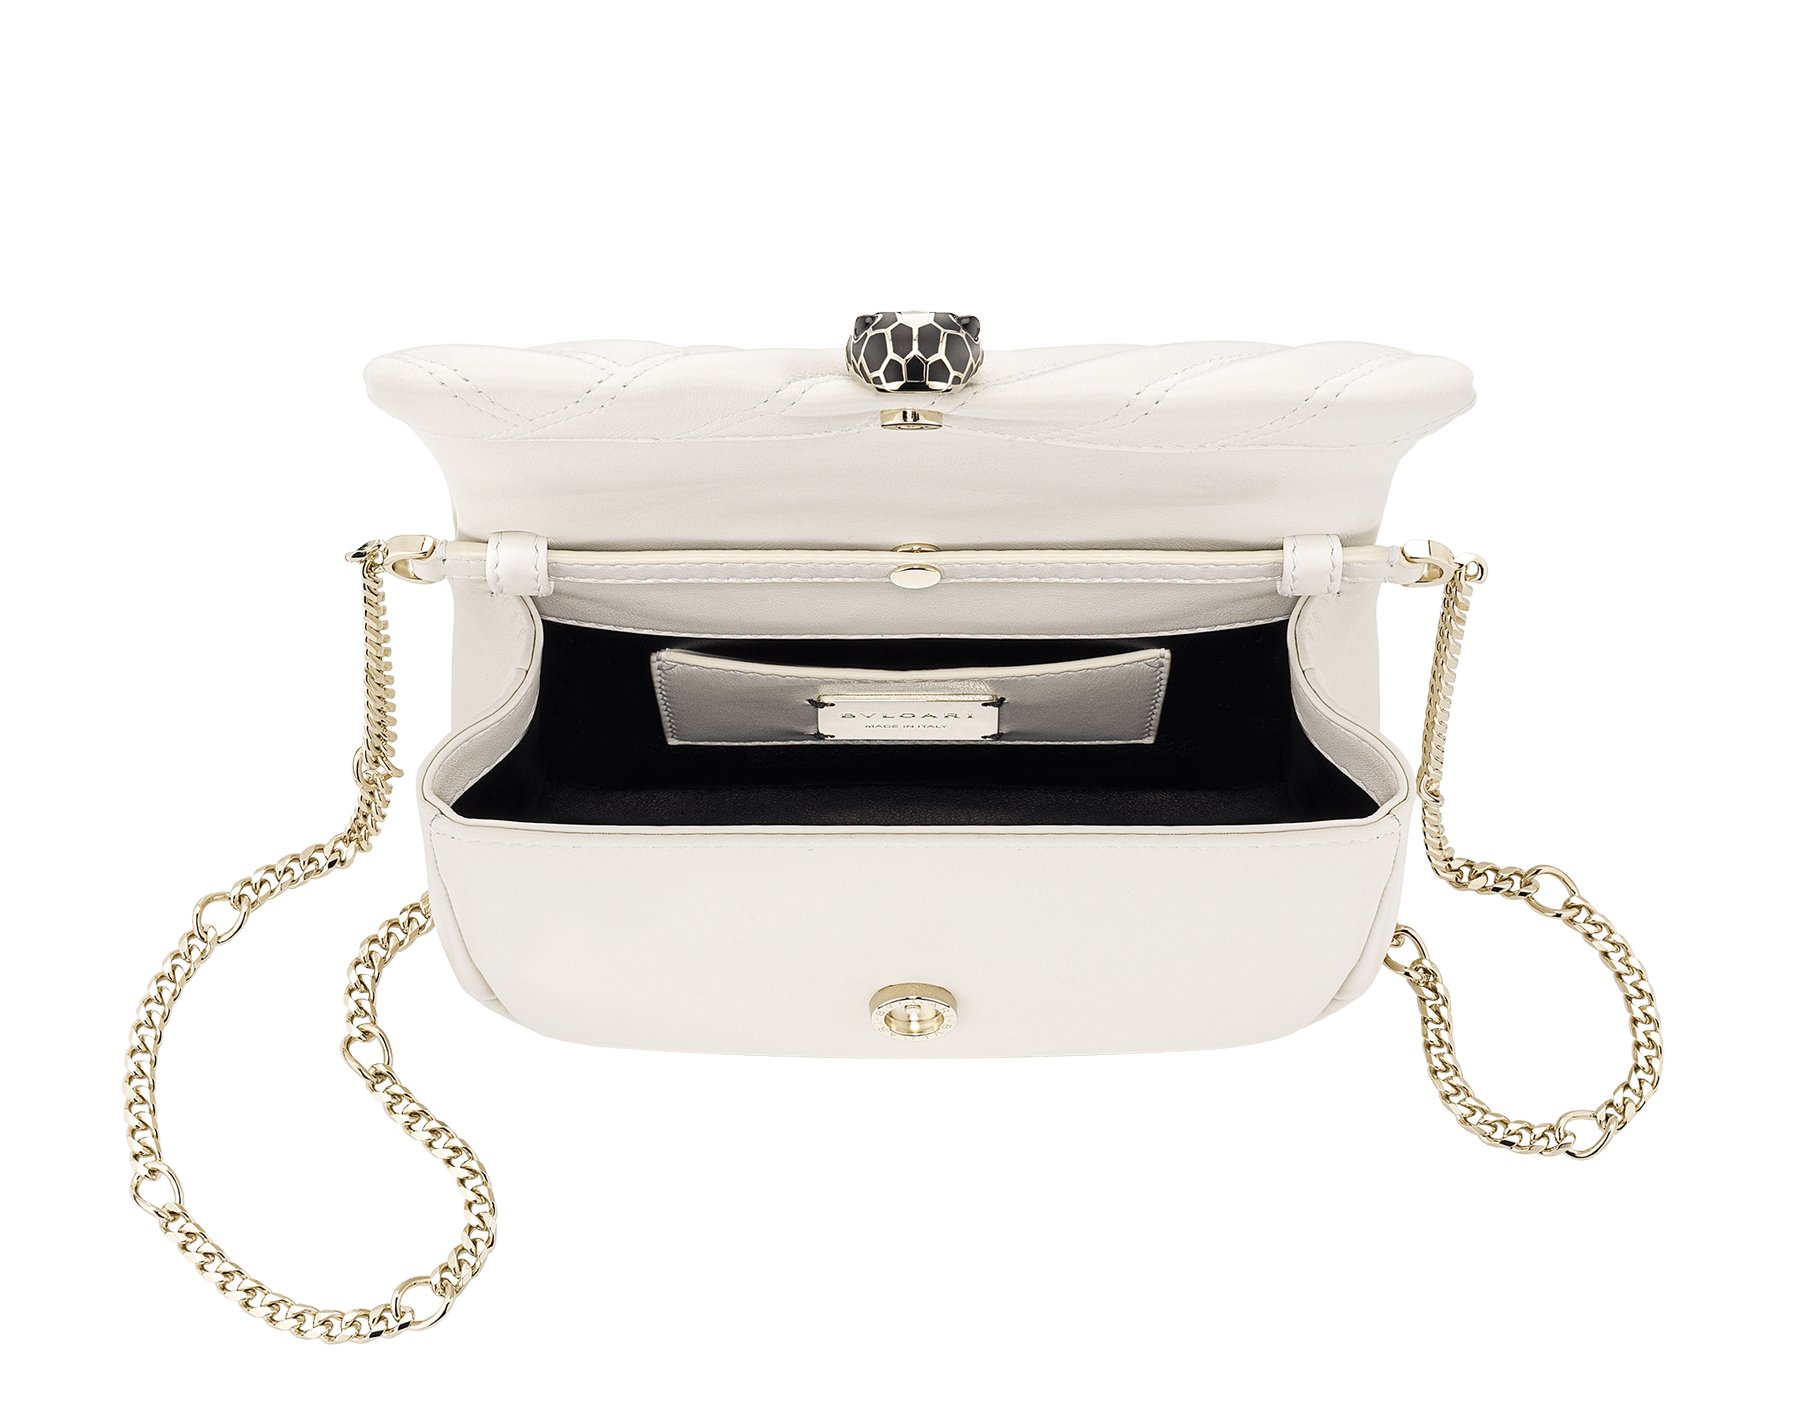 Serpenti Cabochon micro bag in soft matelassé white agate calf leather, with a graphic motif. Brass light gold plated tempting snake head closure in black and white agate enamel and black onyx eyes. 288760 image 4